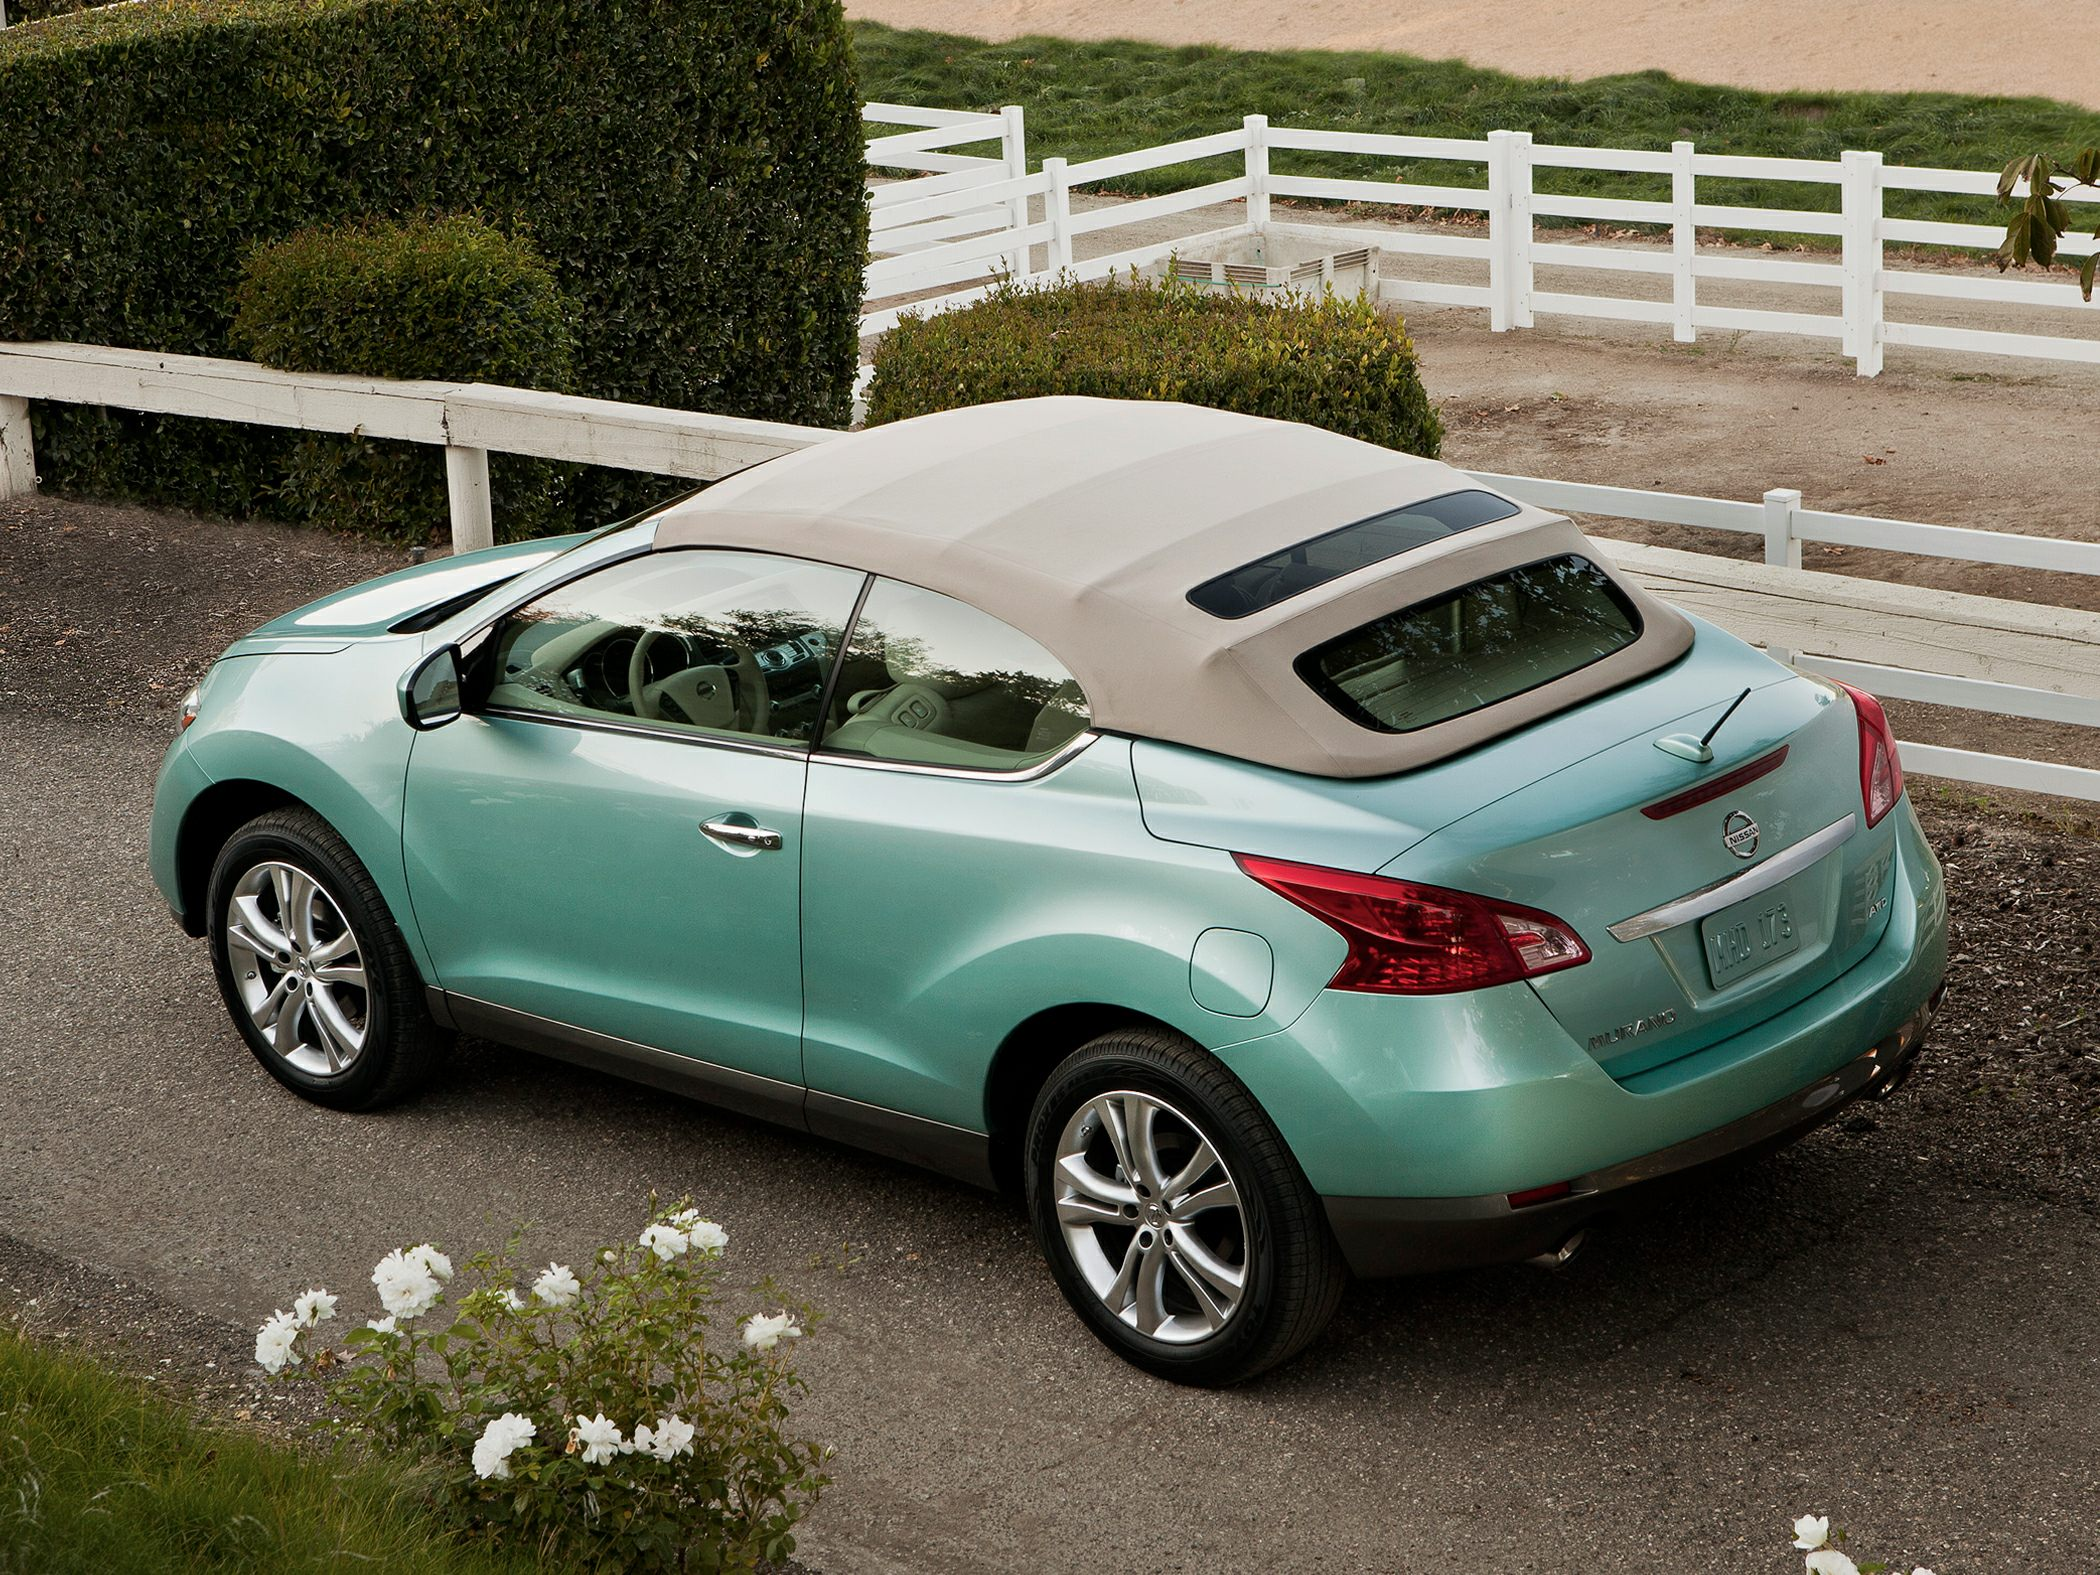 2011 Nissan Murano CrossCabriolet Price Photos Reviews